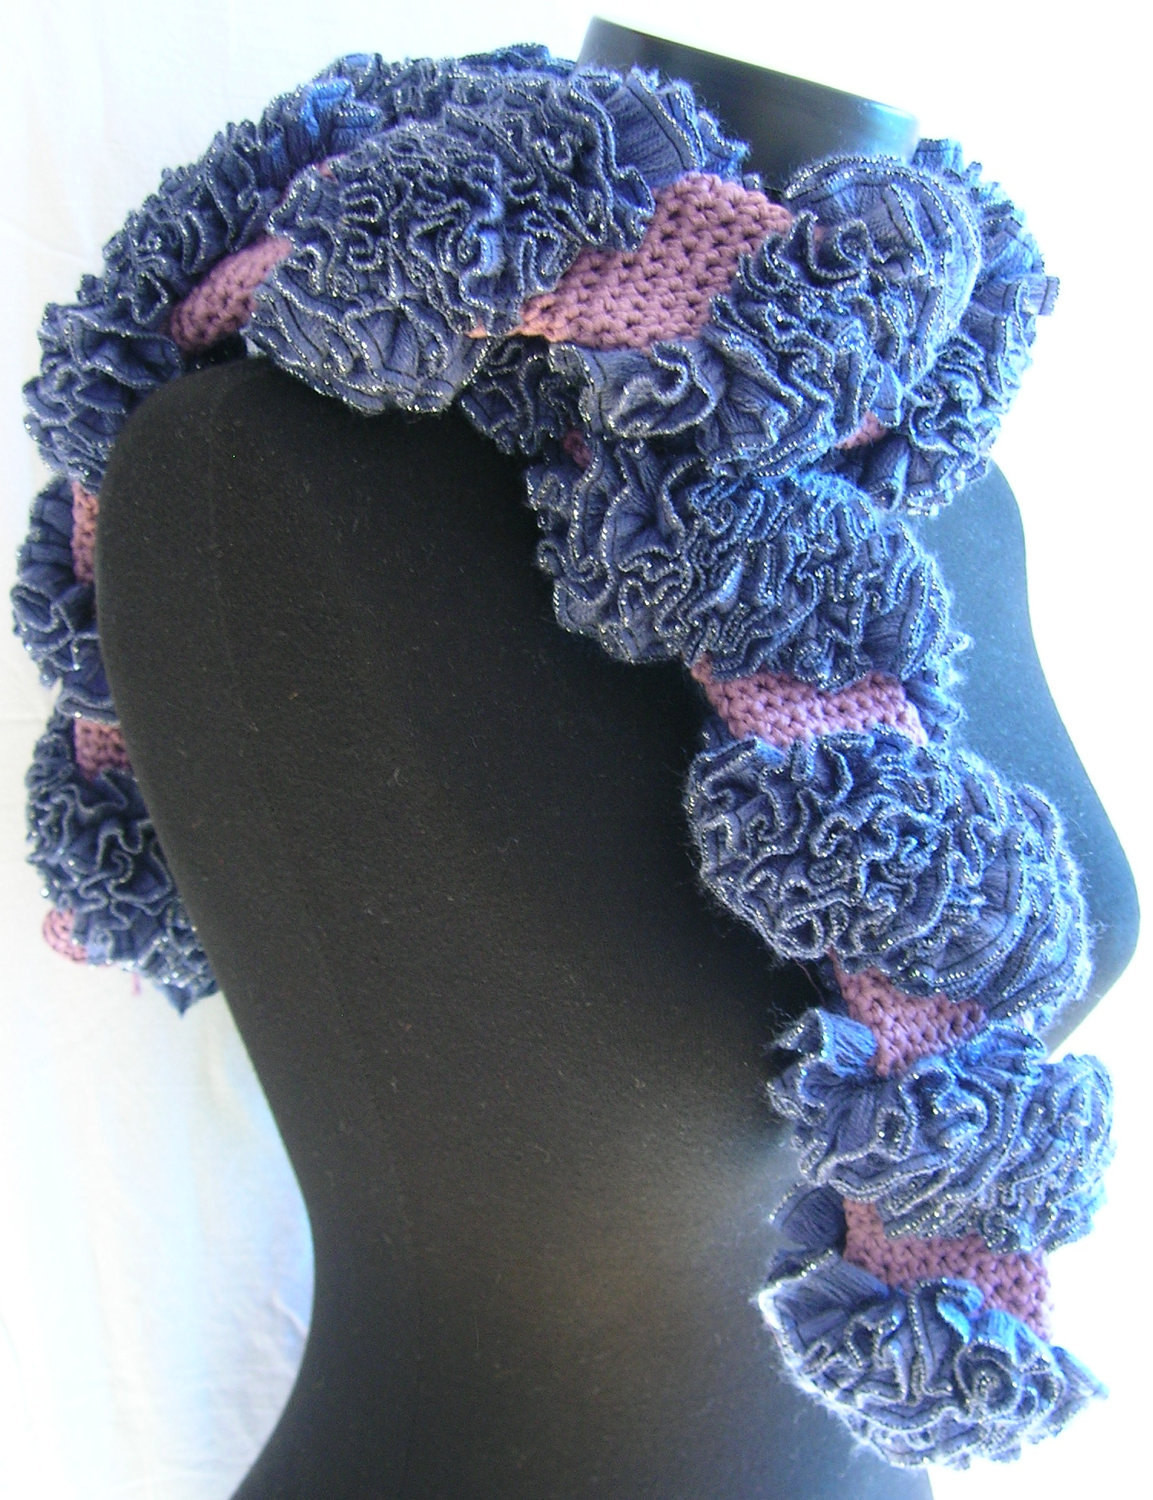 Unique Salsa Spiral Ruffle Scarf A Tubular Crocheted Scarf original Crochet Ruffle Scarf Of Inspirational Firehawke Hooks and Needles Free Pattern Ruffle Scarf Crochet Ruffle Scarf